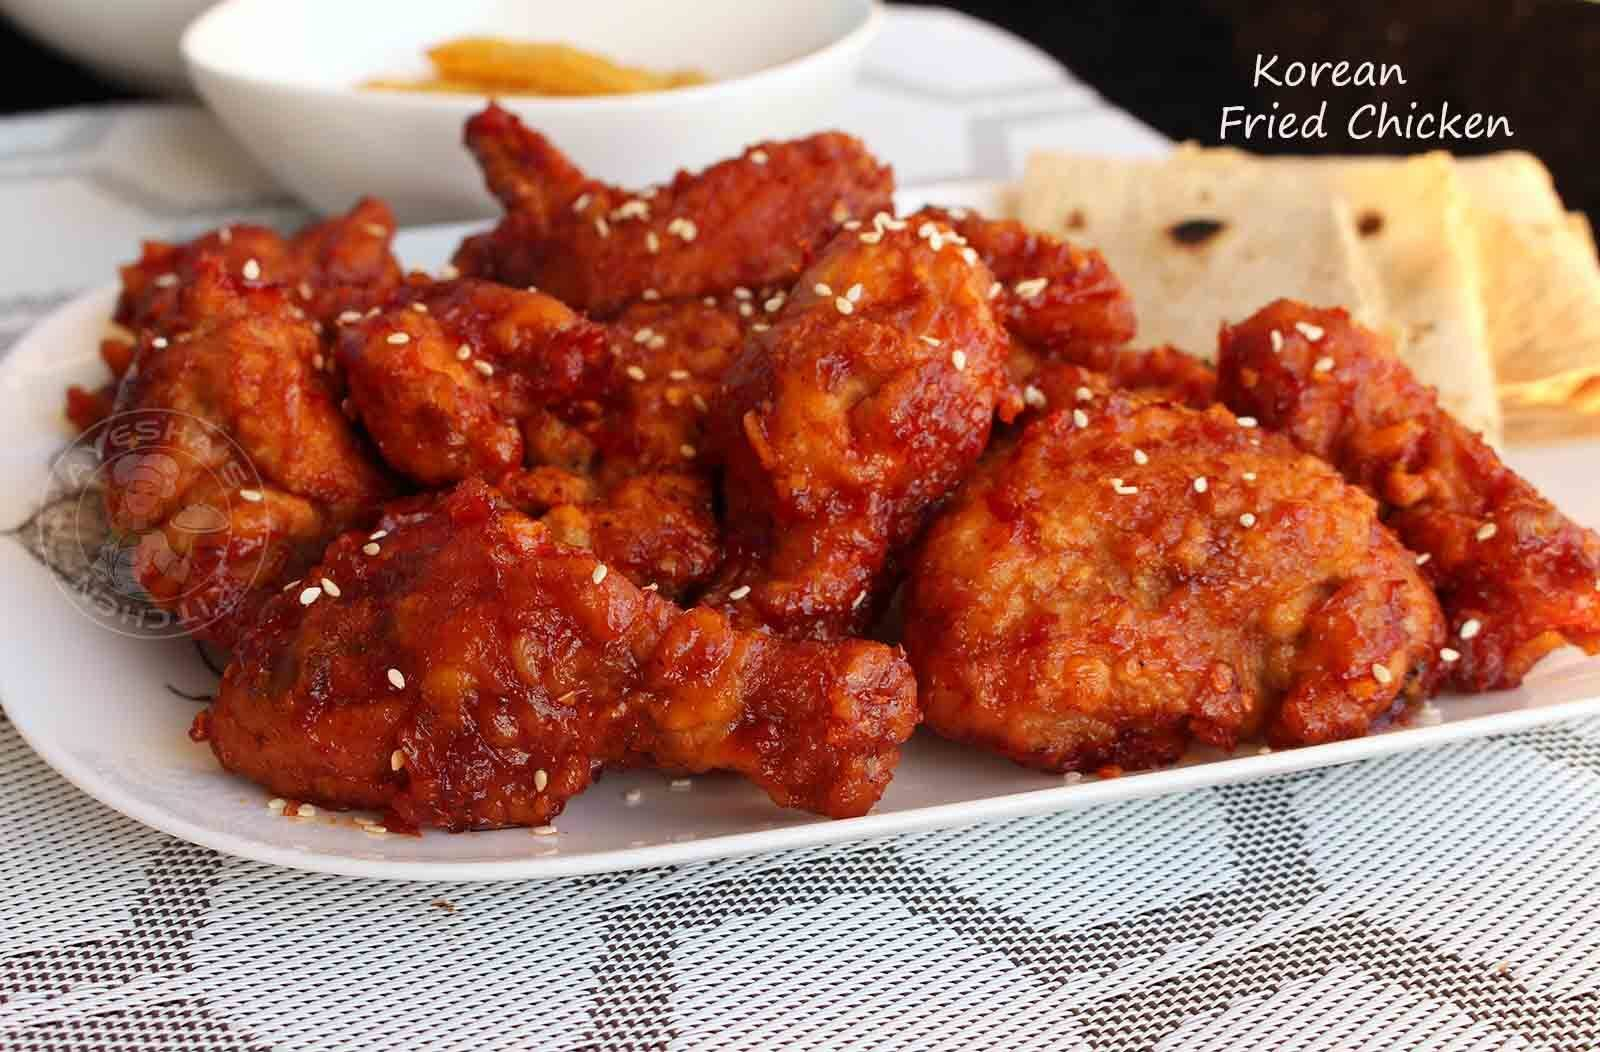 BEST FRIED CHICKEN RECIPE - KOREAN FRIED CHICKEN